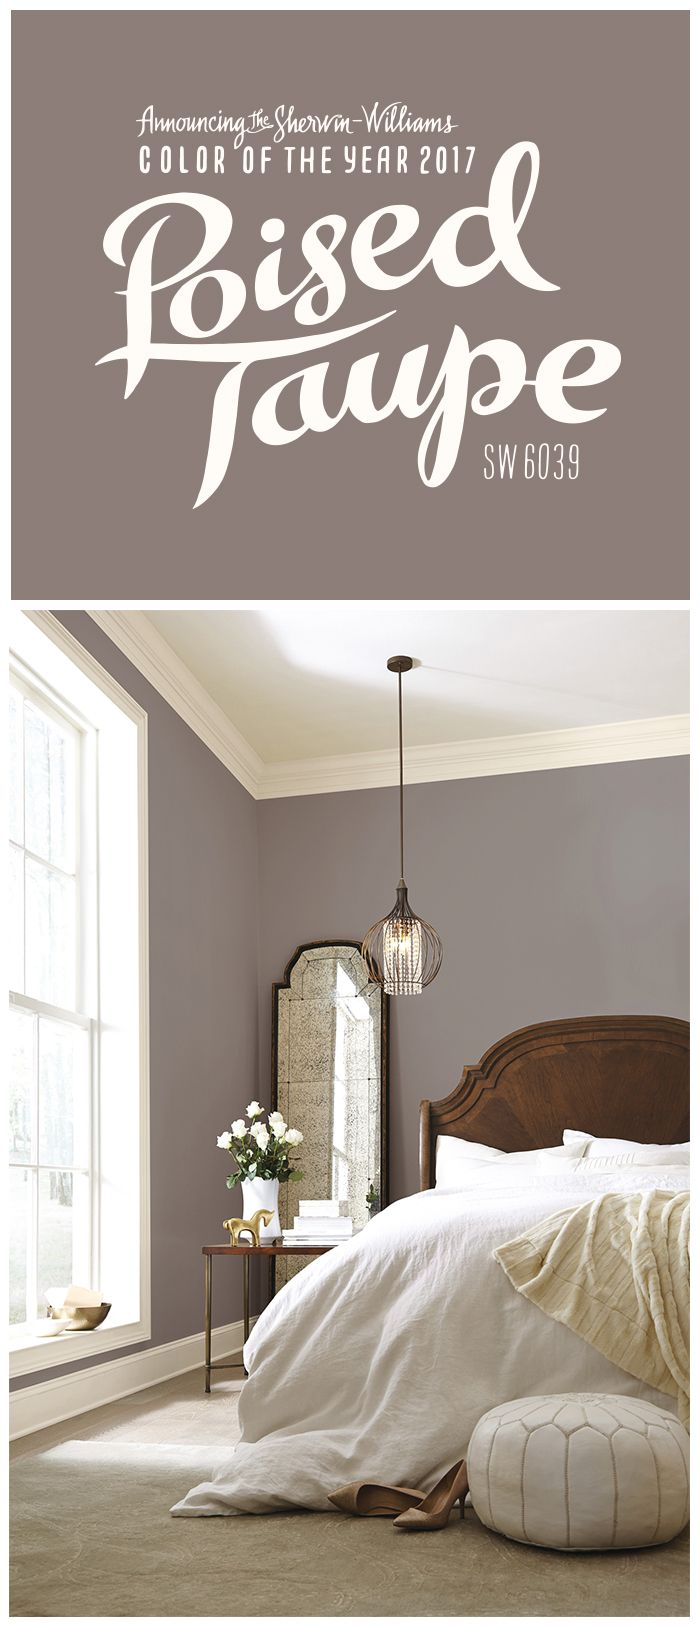 Best images about house on Pinterest Craftsman Wall treatments